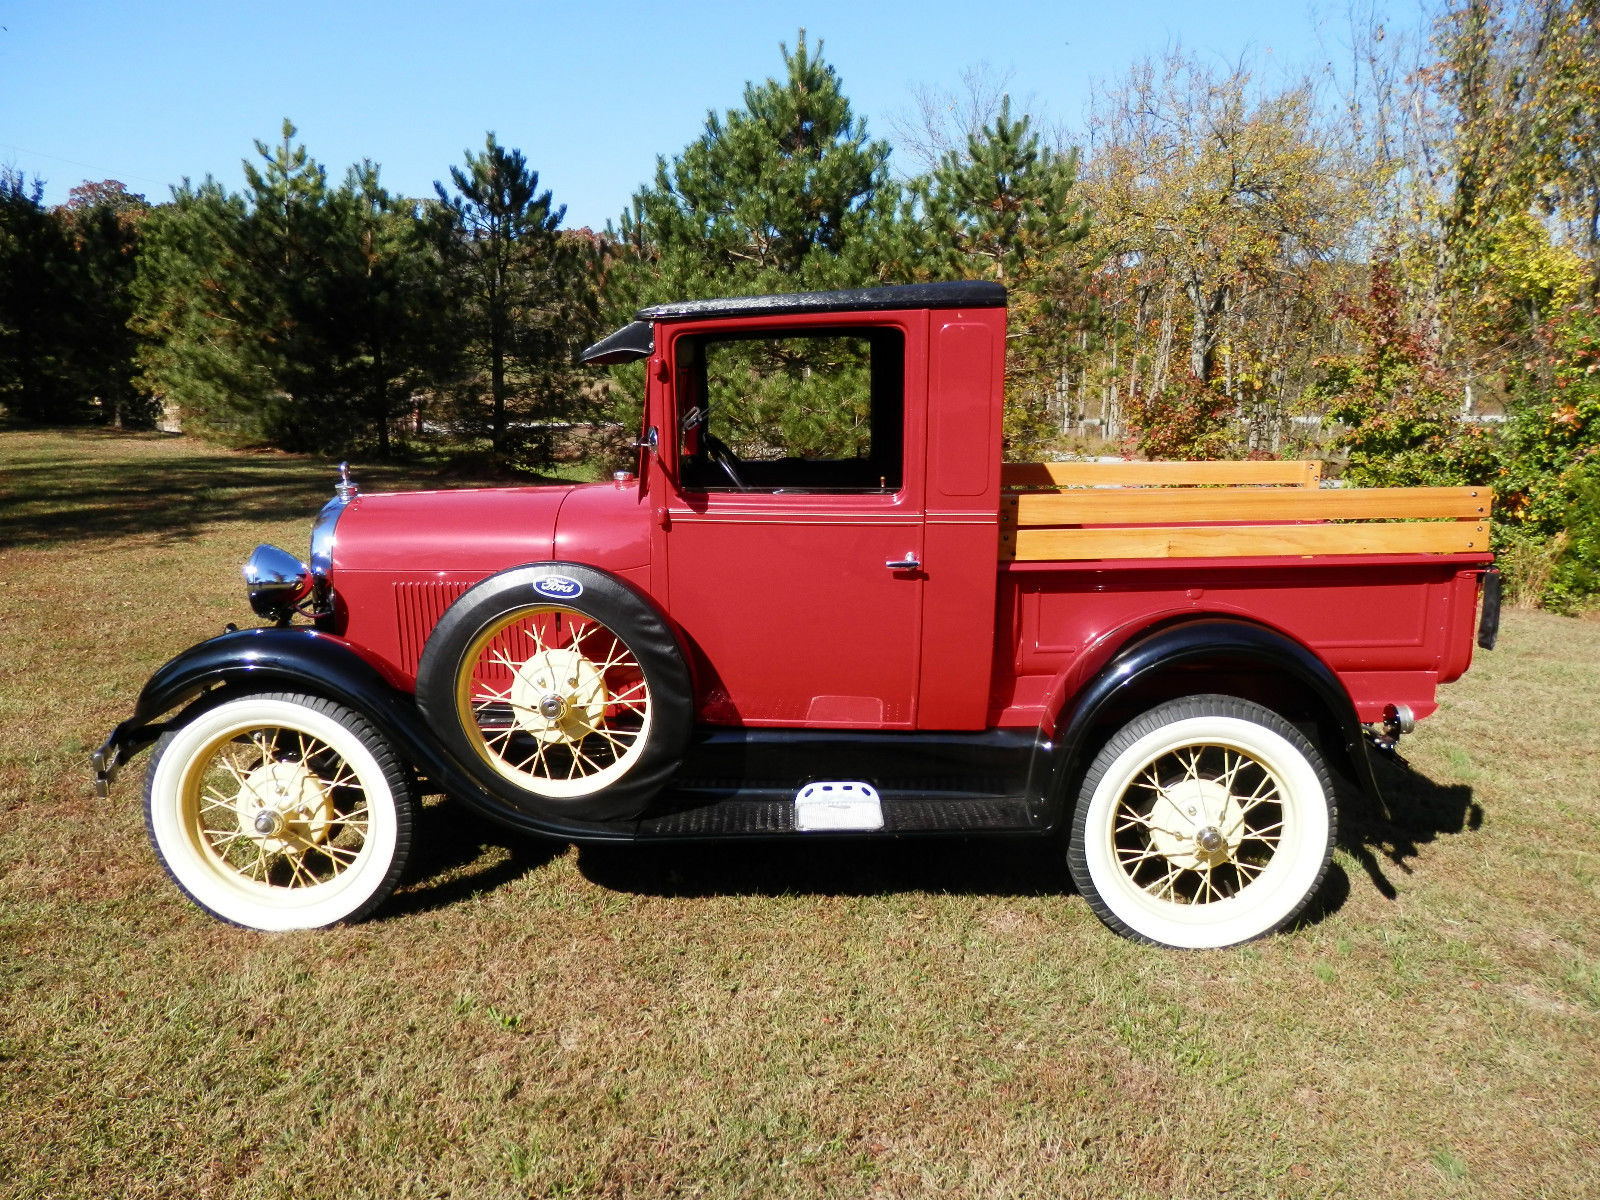 1929 ford model a ford pickup restored custom classic street rod antique truck classic ford. Black Bedroom Furniture Sets. Home Design Ideas